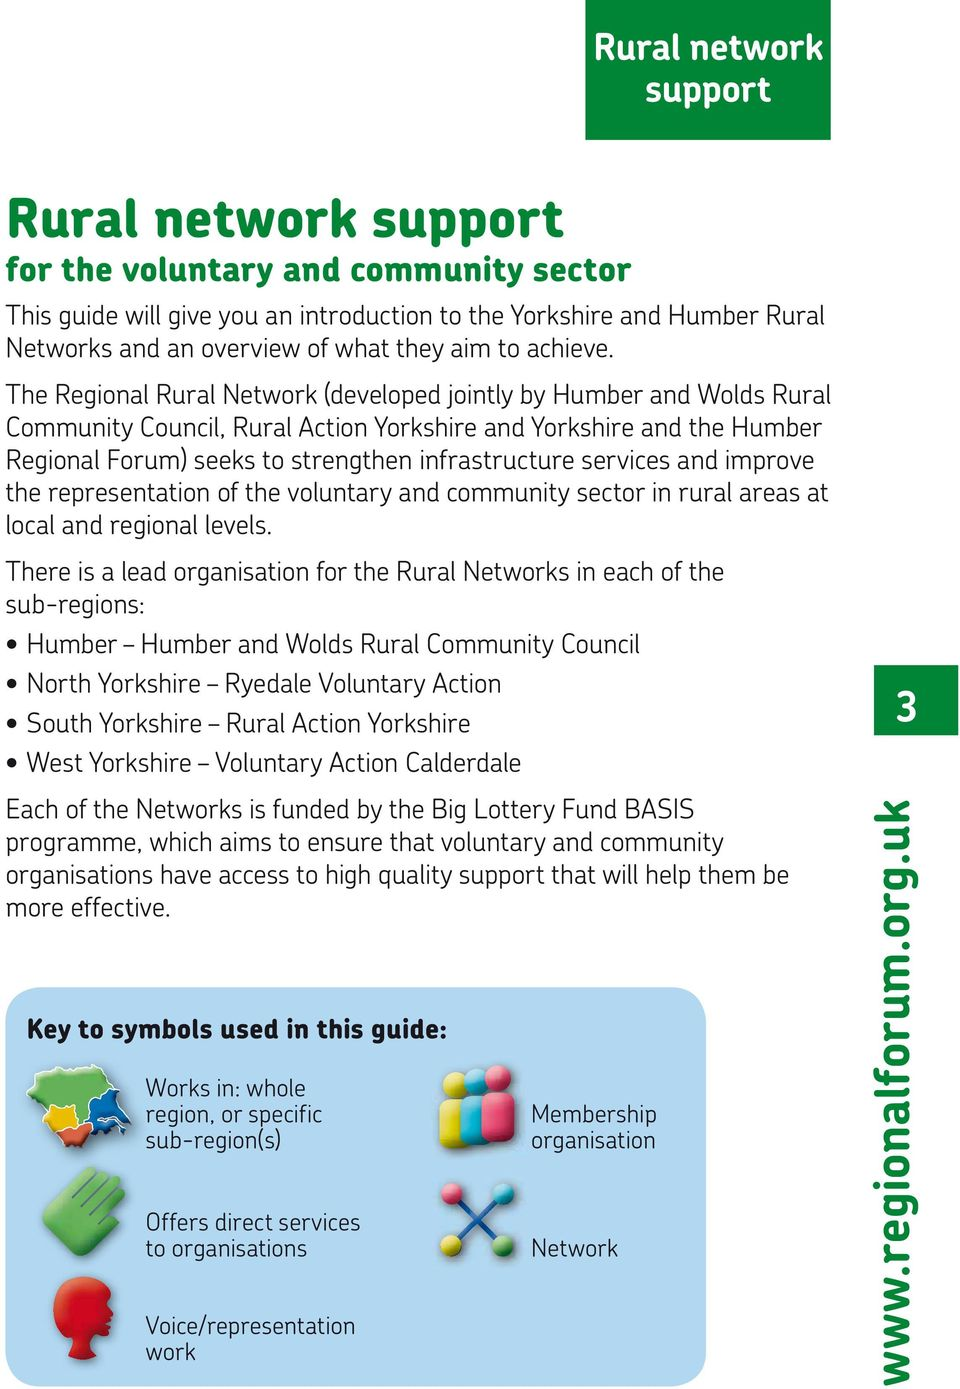 The Regional Rural Network (developed jointly by Humber and Wolds Rural Community Council, Rural Action Yorkshire and Yorkshire and the Humber Regional Forum) seeks to strengthen infrastructure